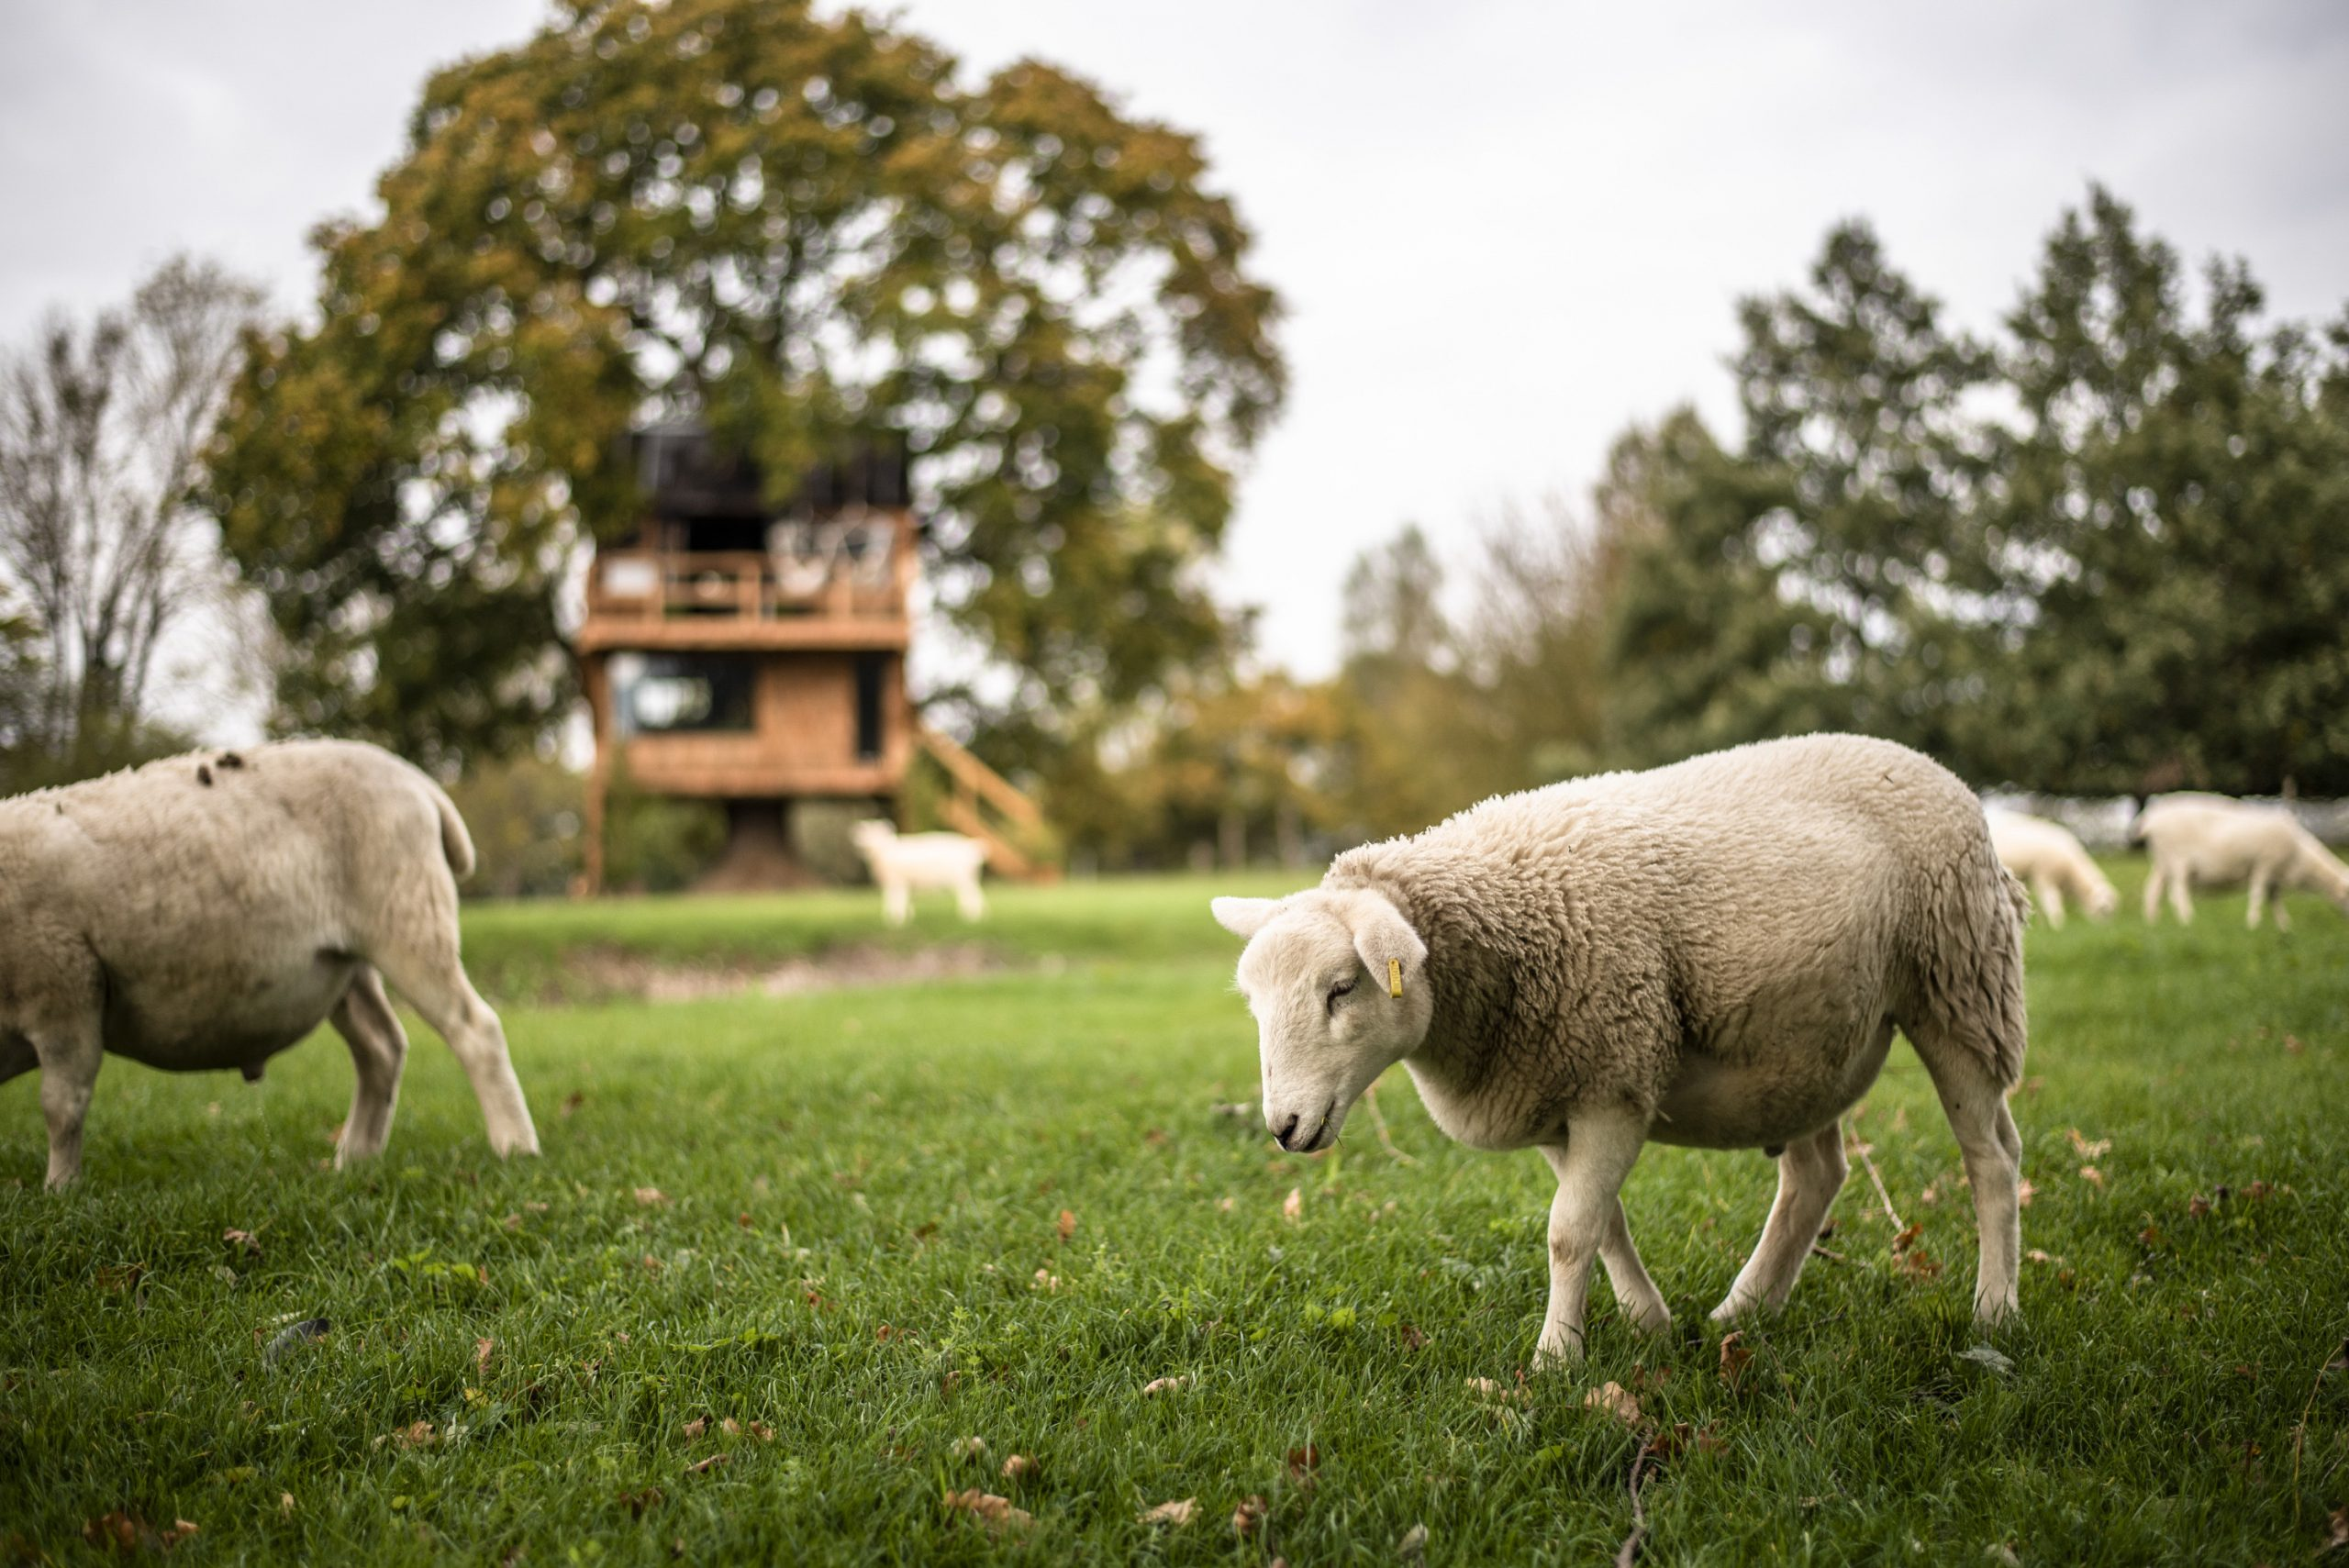 Our family sheep grazing on the meadow outside The Old Oak at Colemans Farm